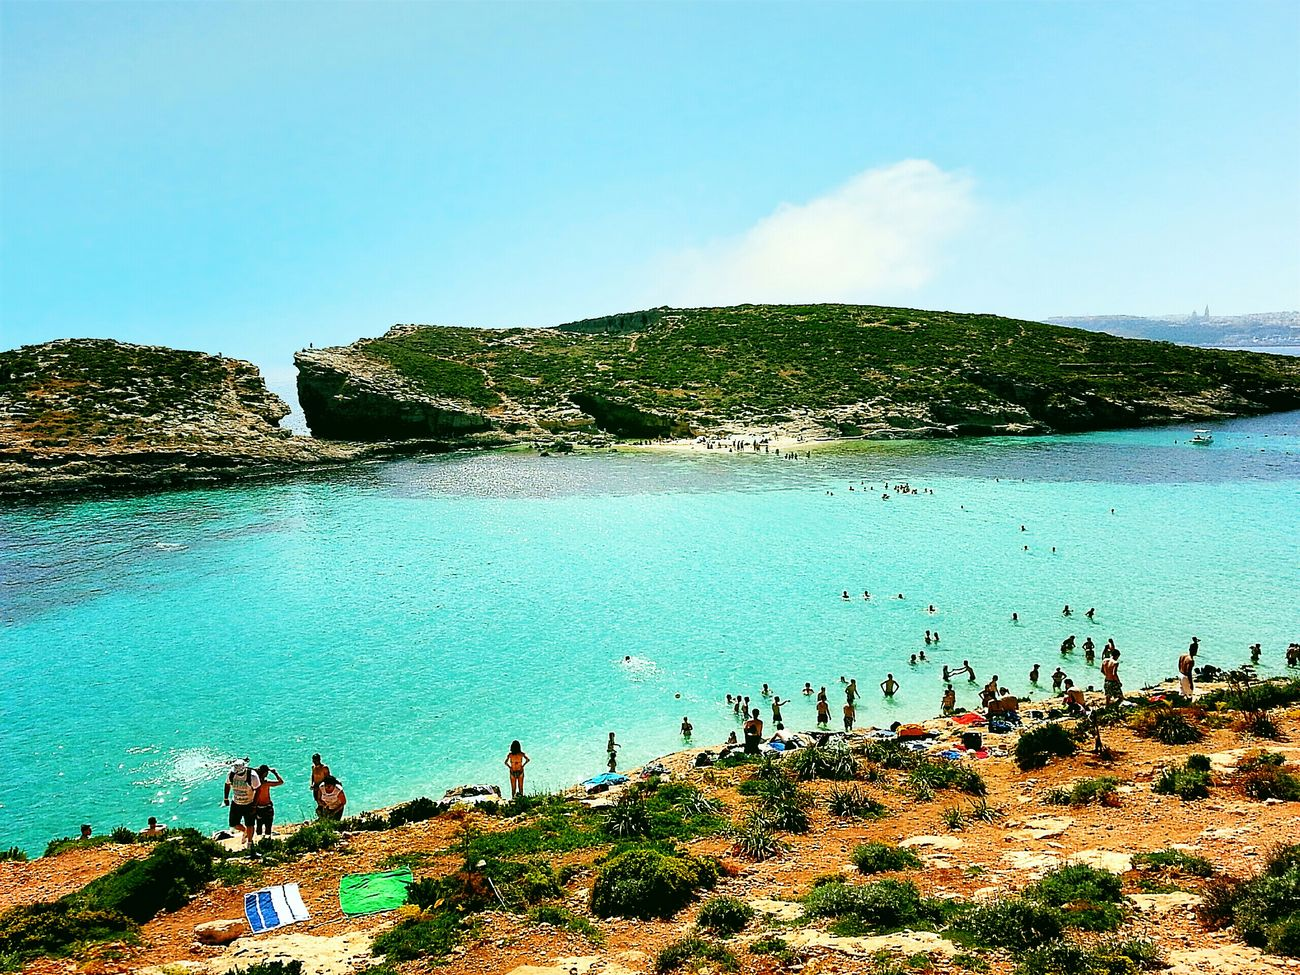 Fancy a swim? Visiting Malta The Blue Lagoon, Comino Mediterranean  Swimming Time